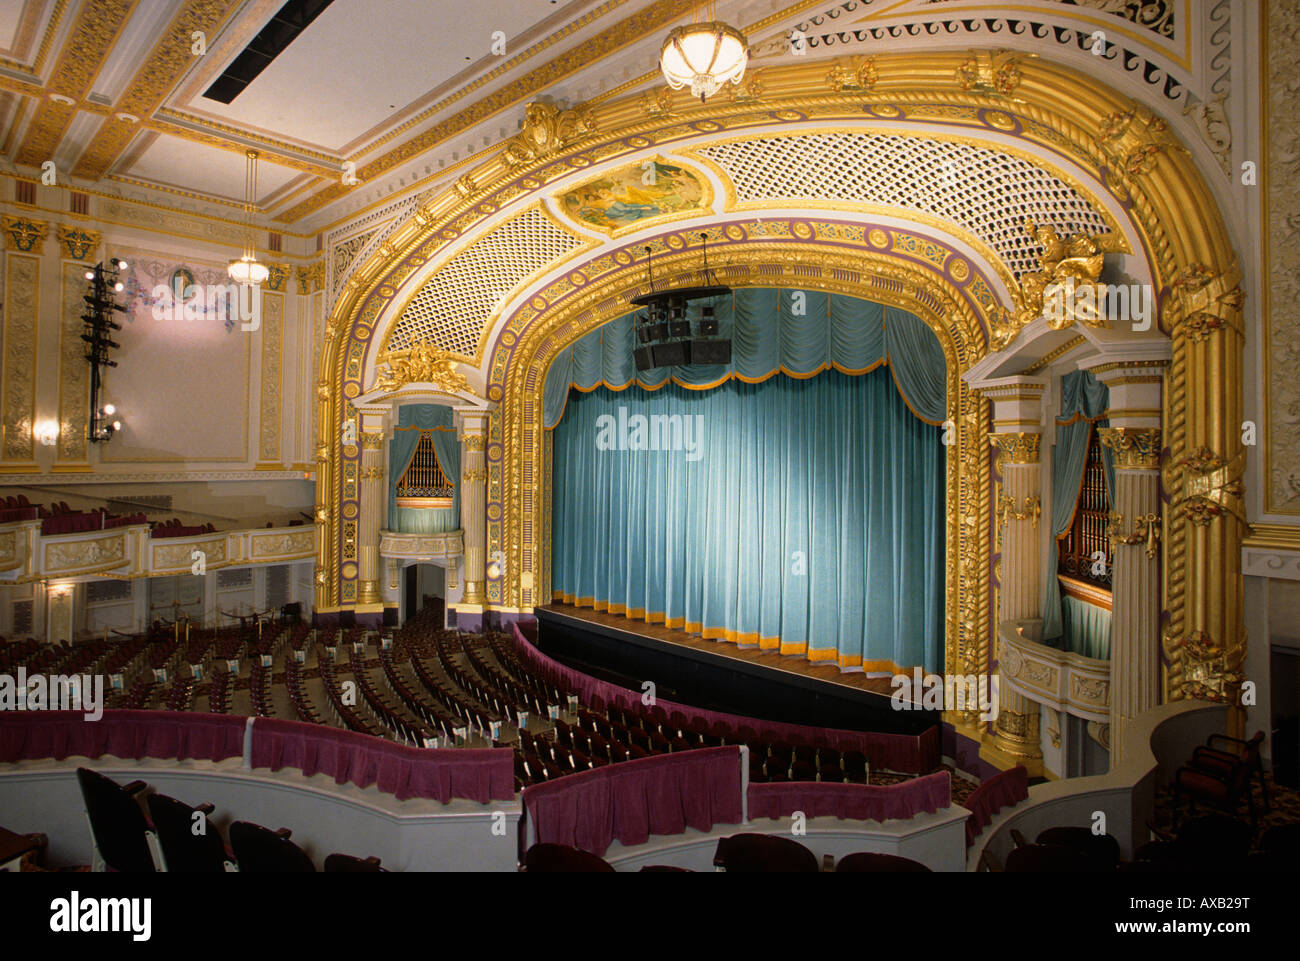 RESTORED INTERIOR OF THE HISTORIC STATE THEATRE ON HENNEPIN AVENUE IN DOWNTOWN MINNEAPOLIS MINNESOTA